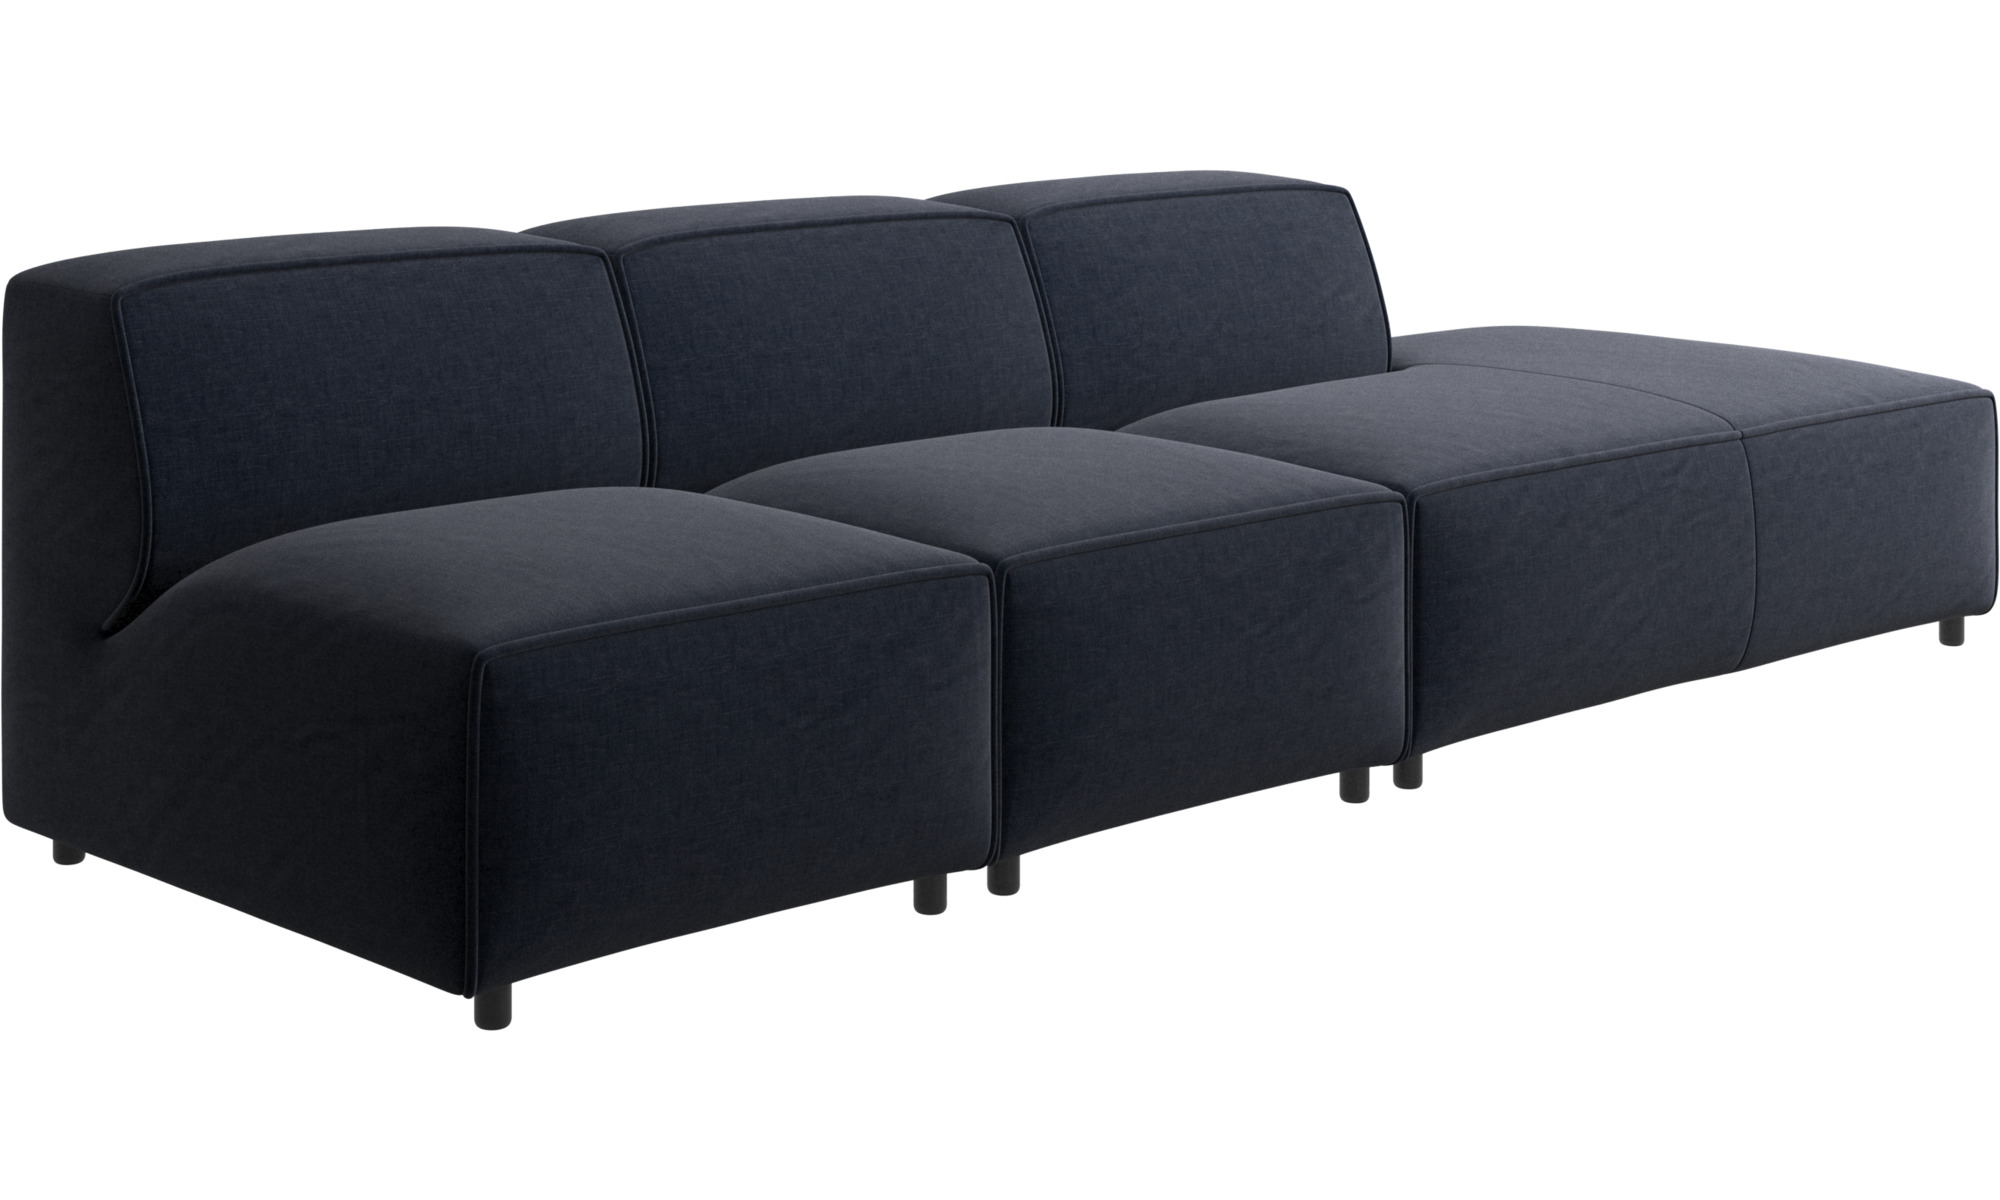 navy blue napoli carmo sofa with lounging unit boconcept. Black Bedroom Furniture Sets. Home Design Ideas